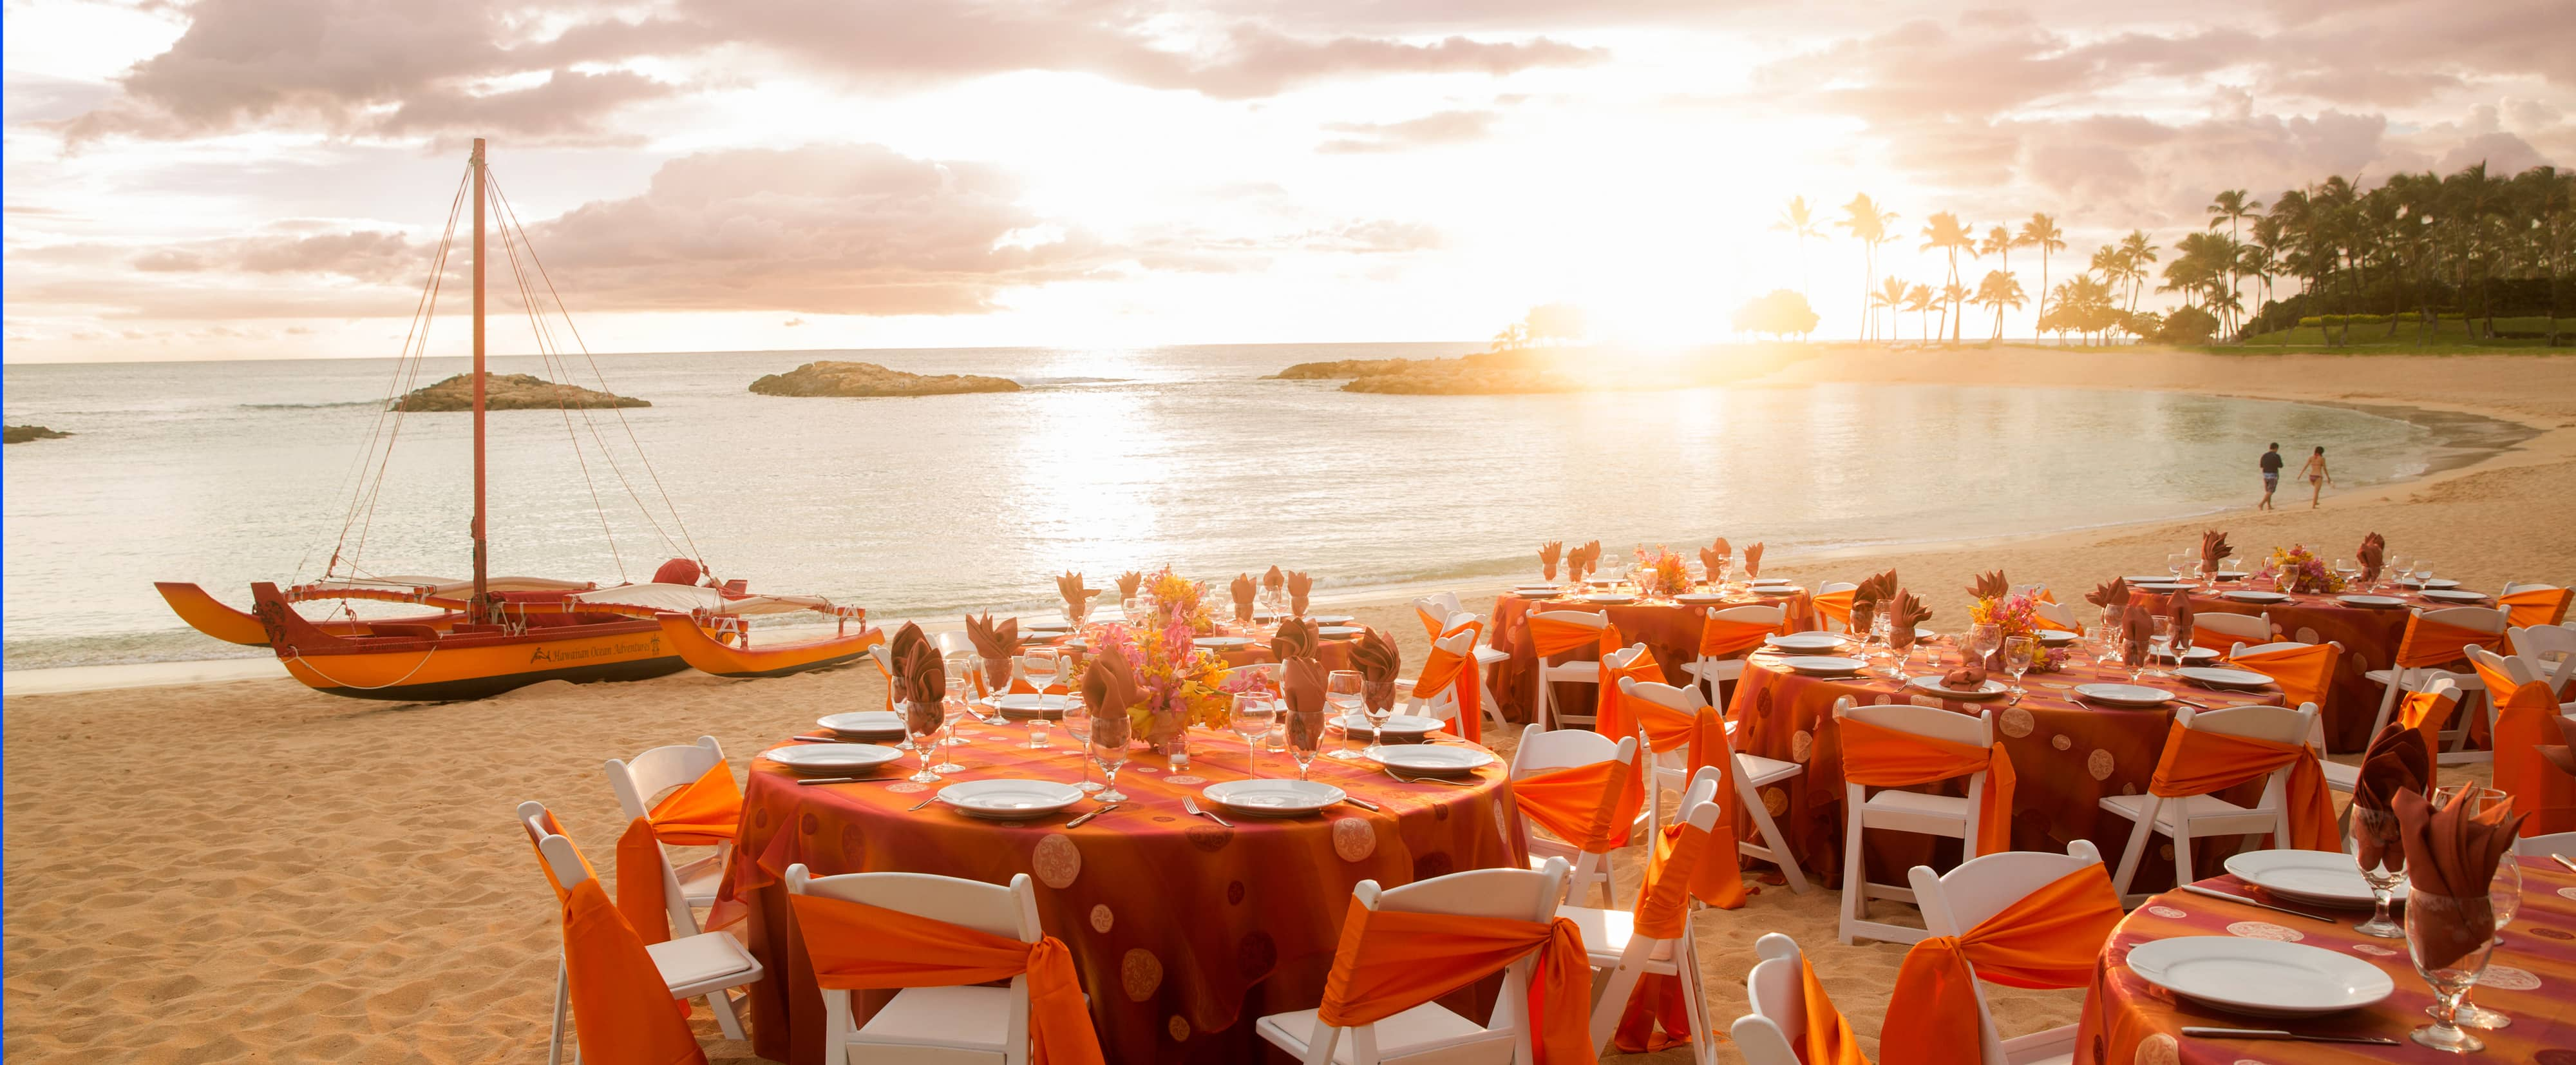 Festively set tables and chairs are grouped in the sand along the beachfront